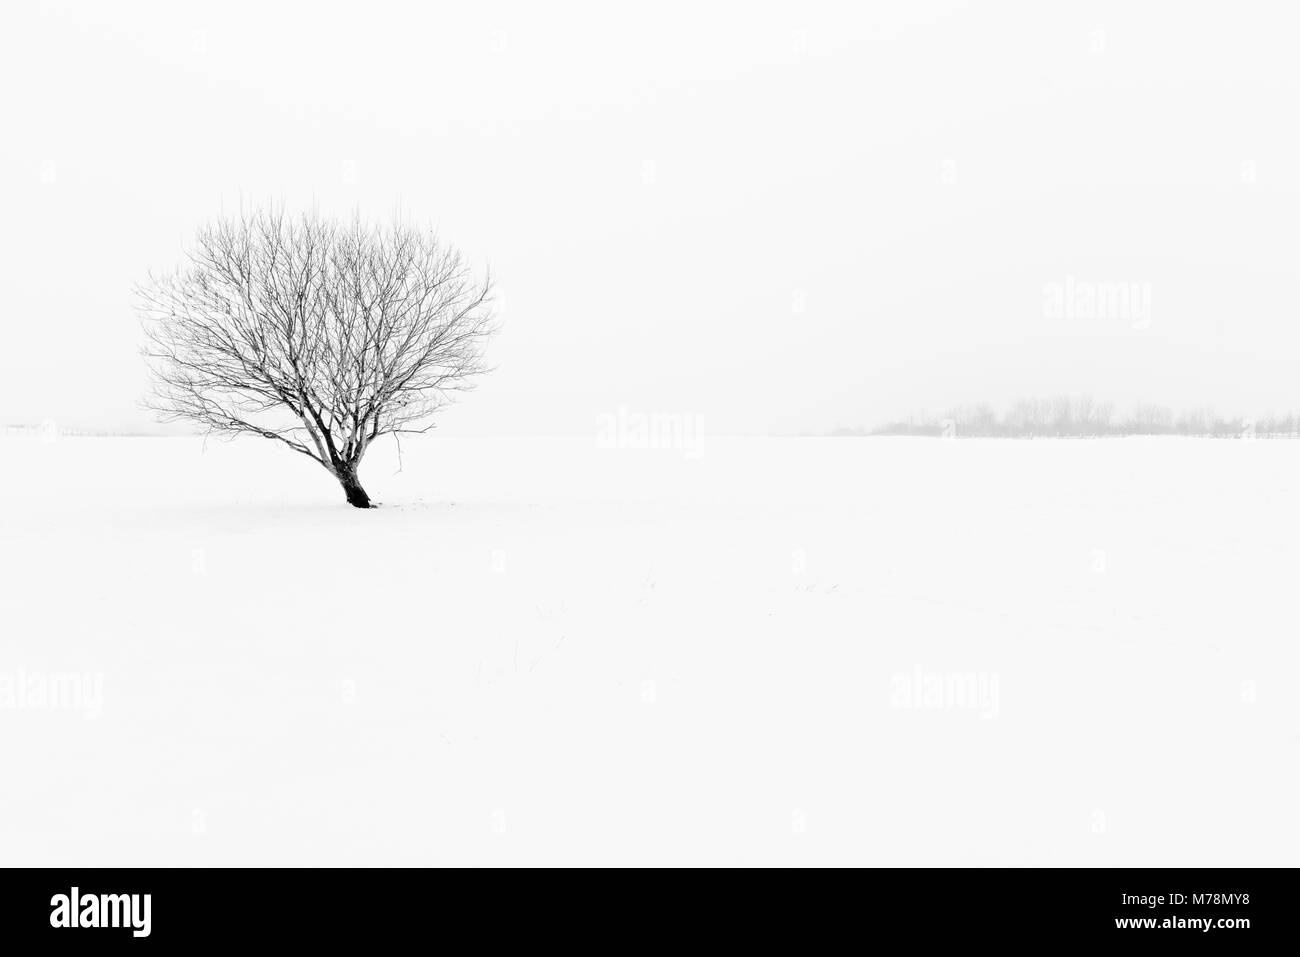 Winter black and white misty landscape minimalist snow scene with lone tree - Stock Image